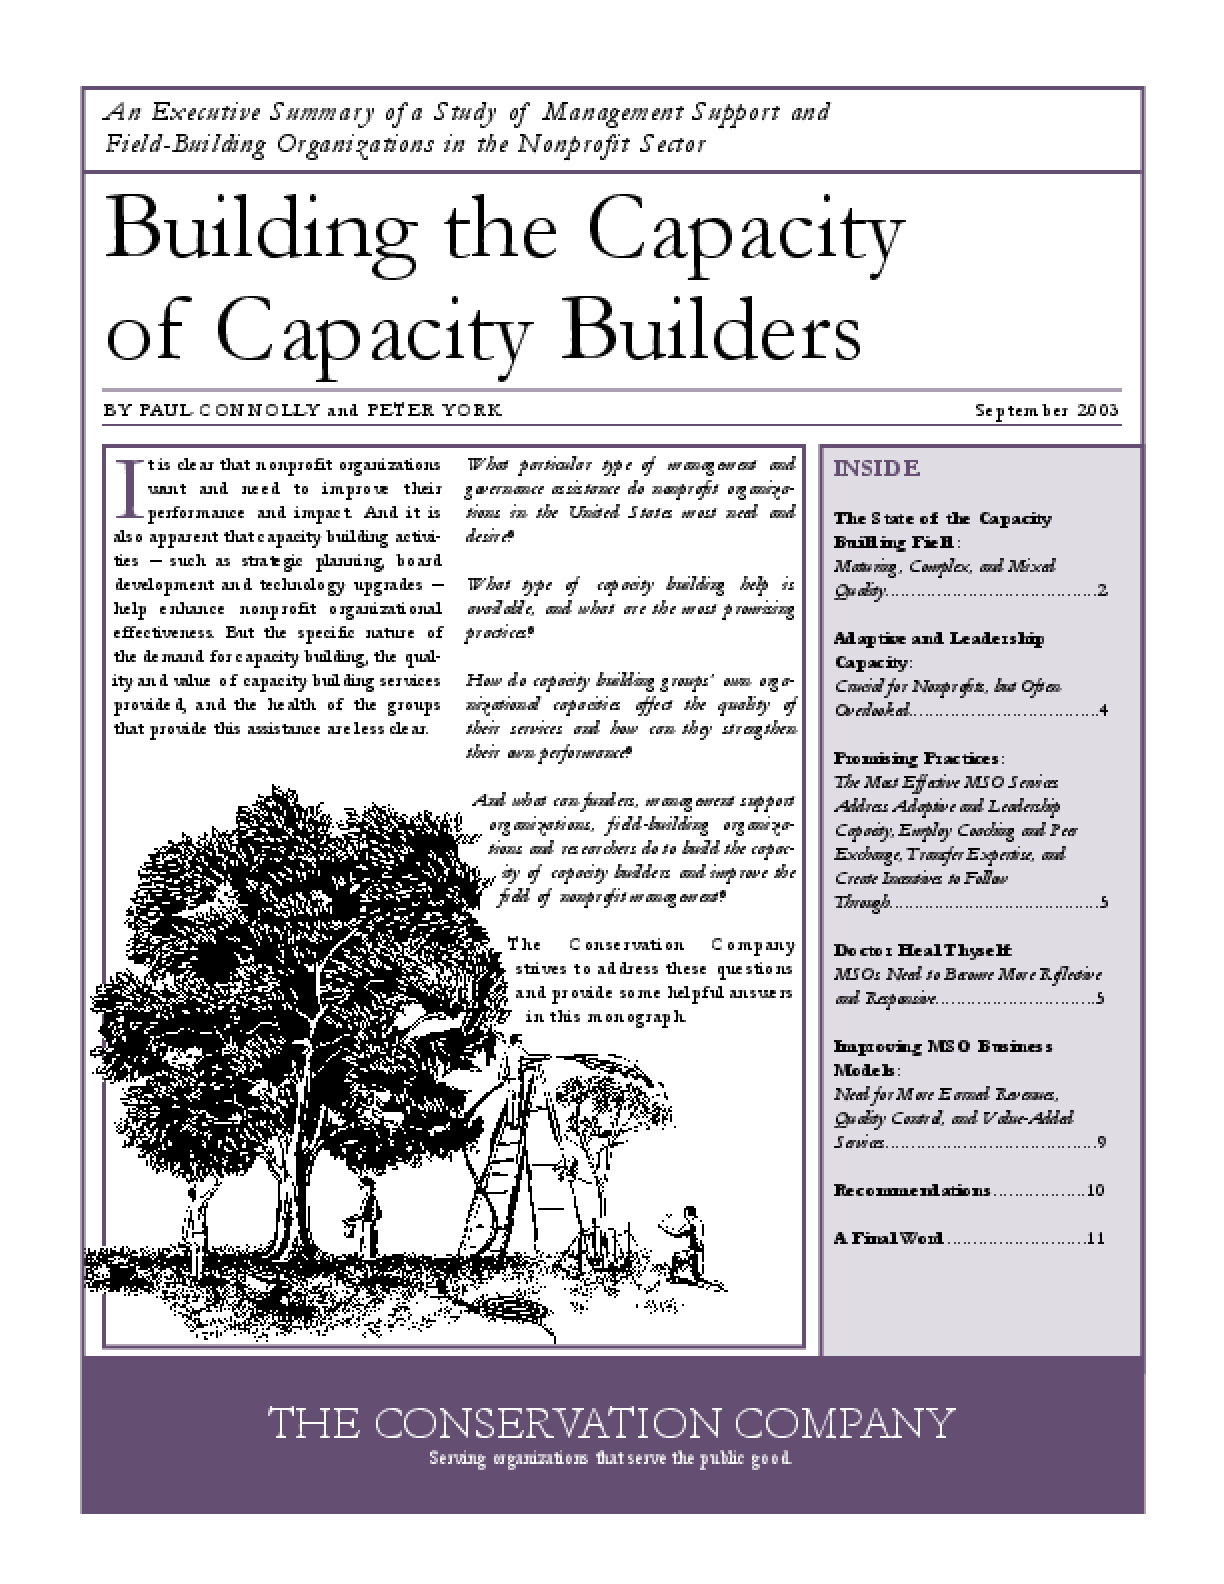 Building the Capacity of Capacity Builders: A Study of Management Support and Field-Building Organizations in the Nonprofit Sector